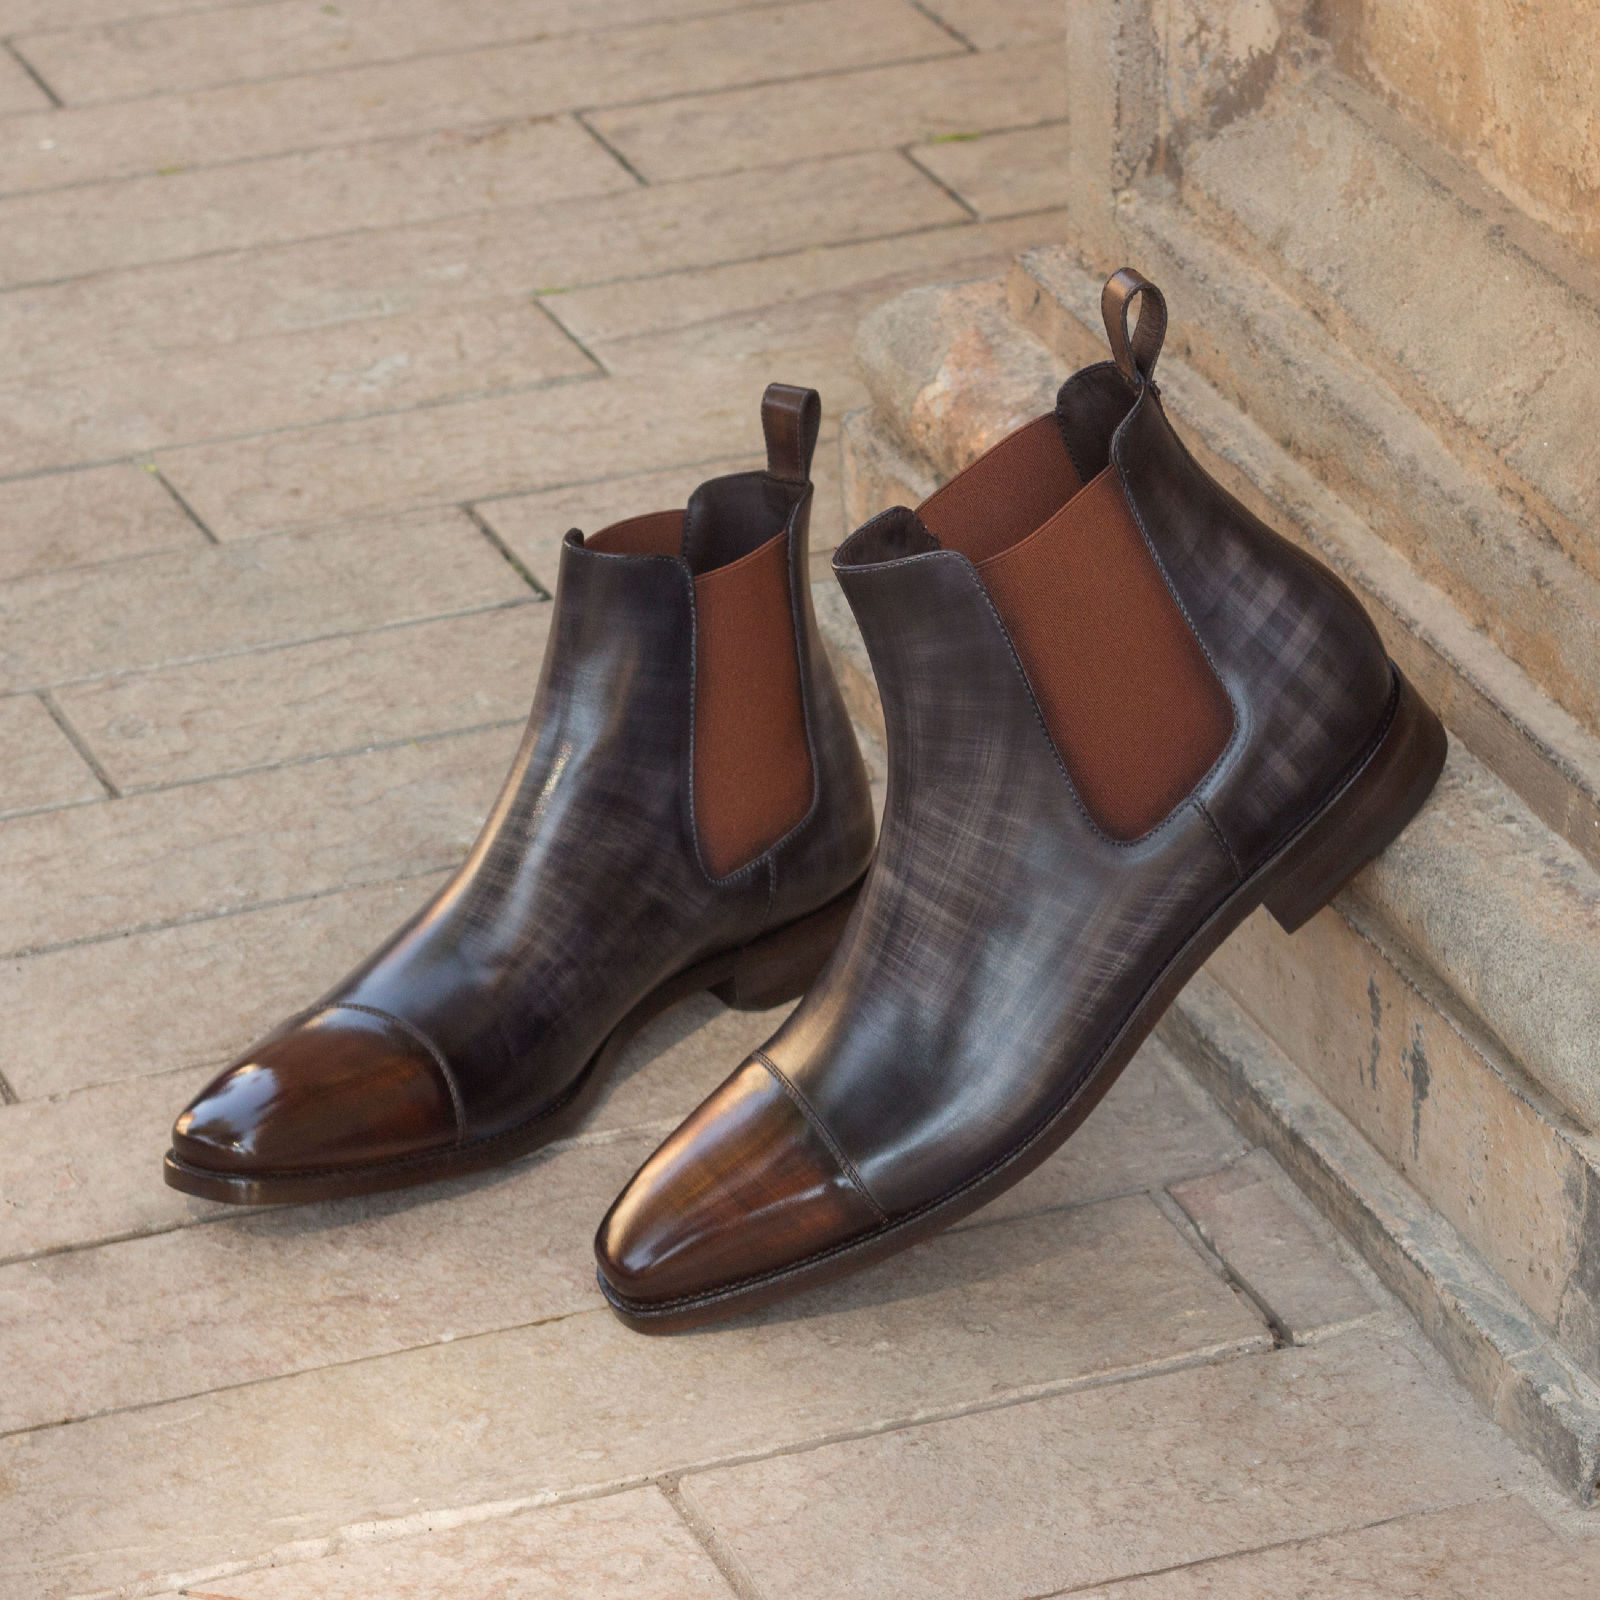 Chelsea boot  grey crust patina + brown crust patina : 360€